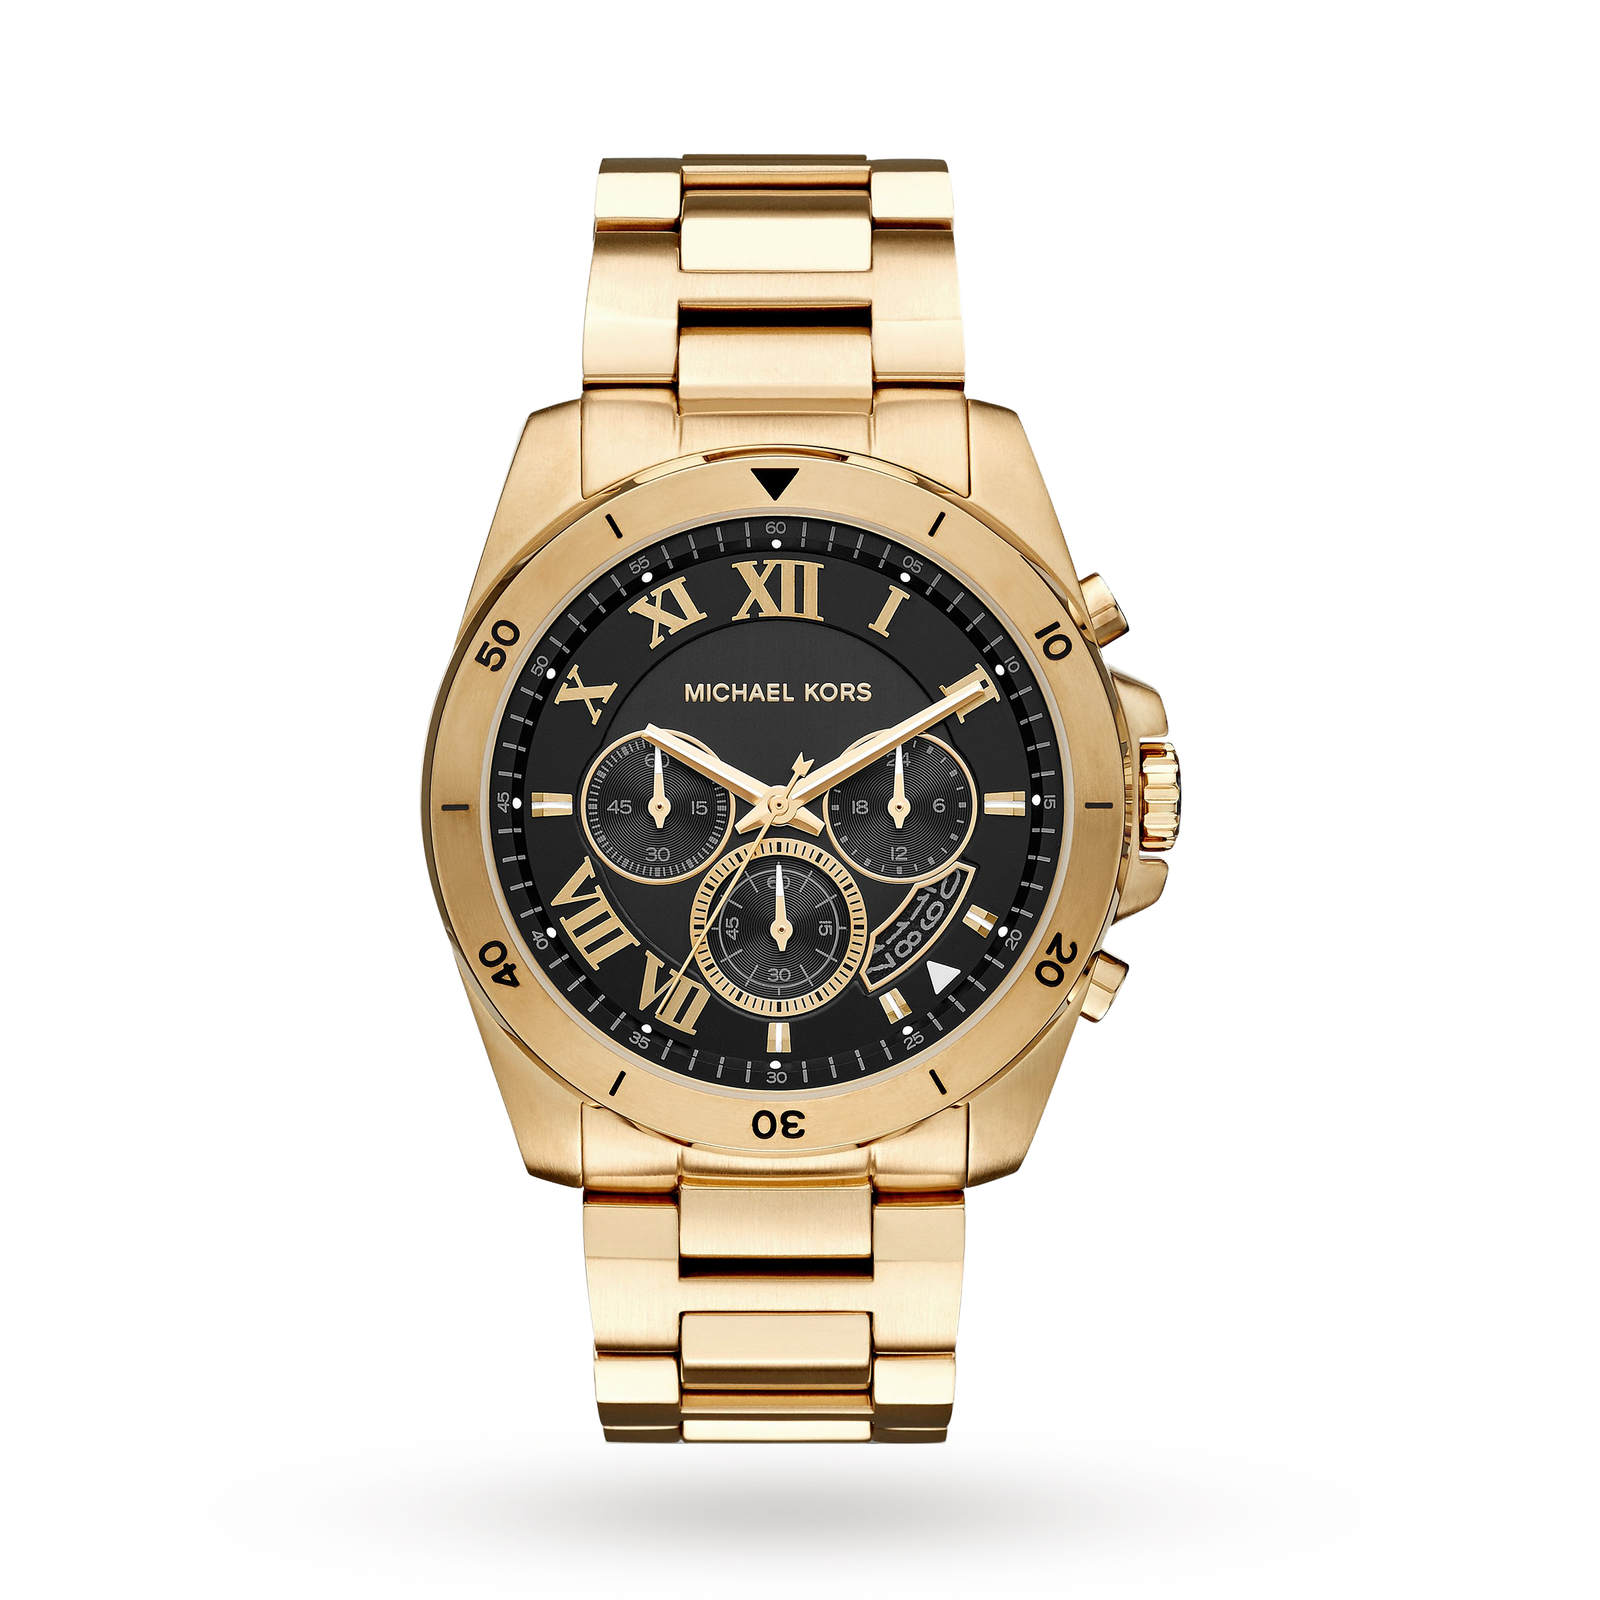 Michael Kors Men's Brecken Chronograph Watch